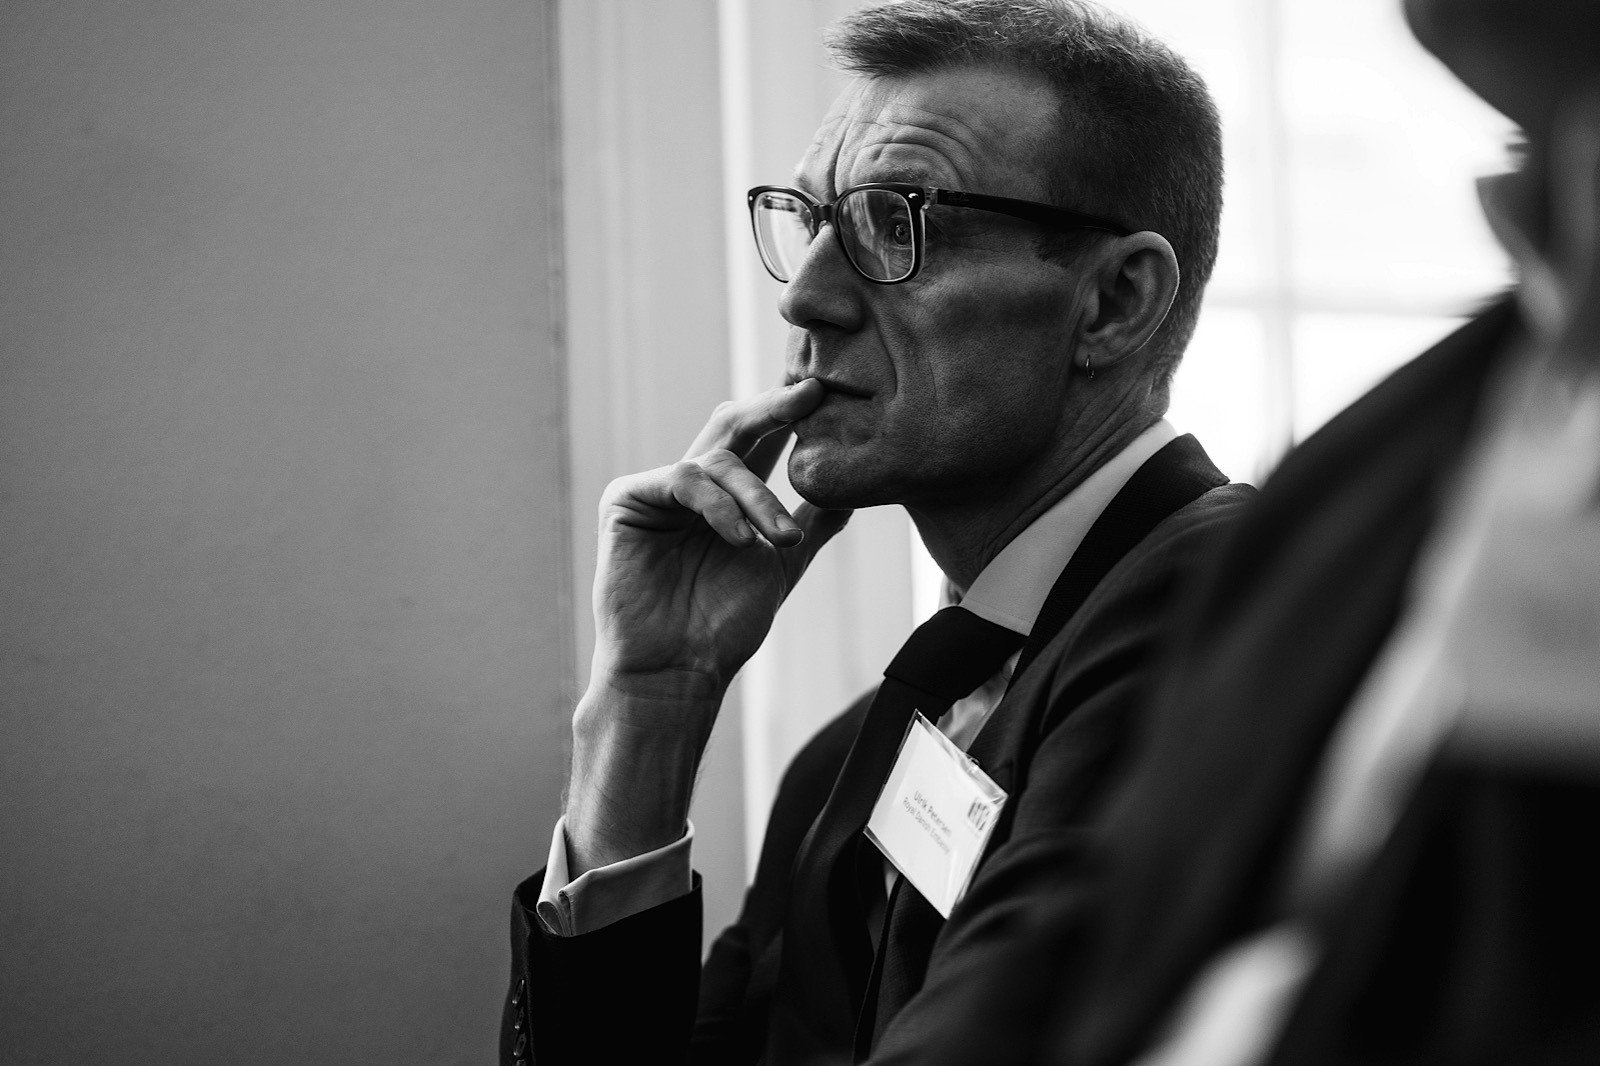 Man with glasses thoughtfully listening to meeting